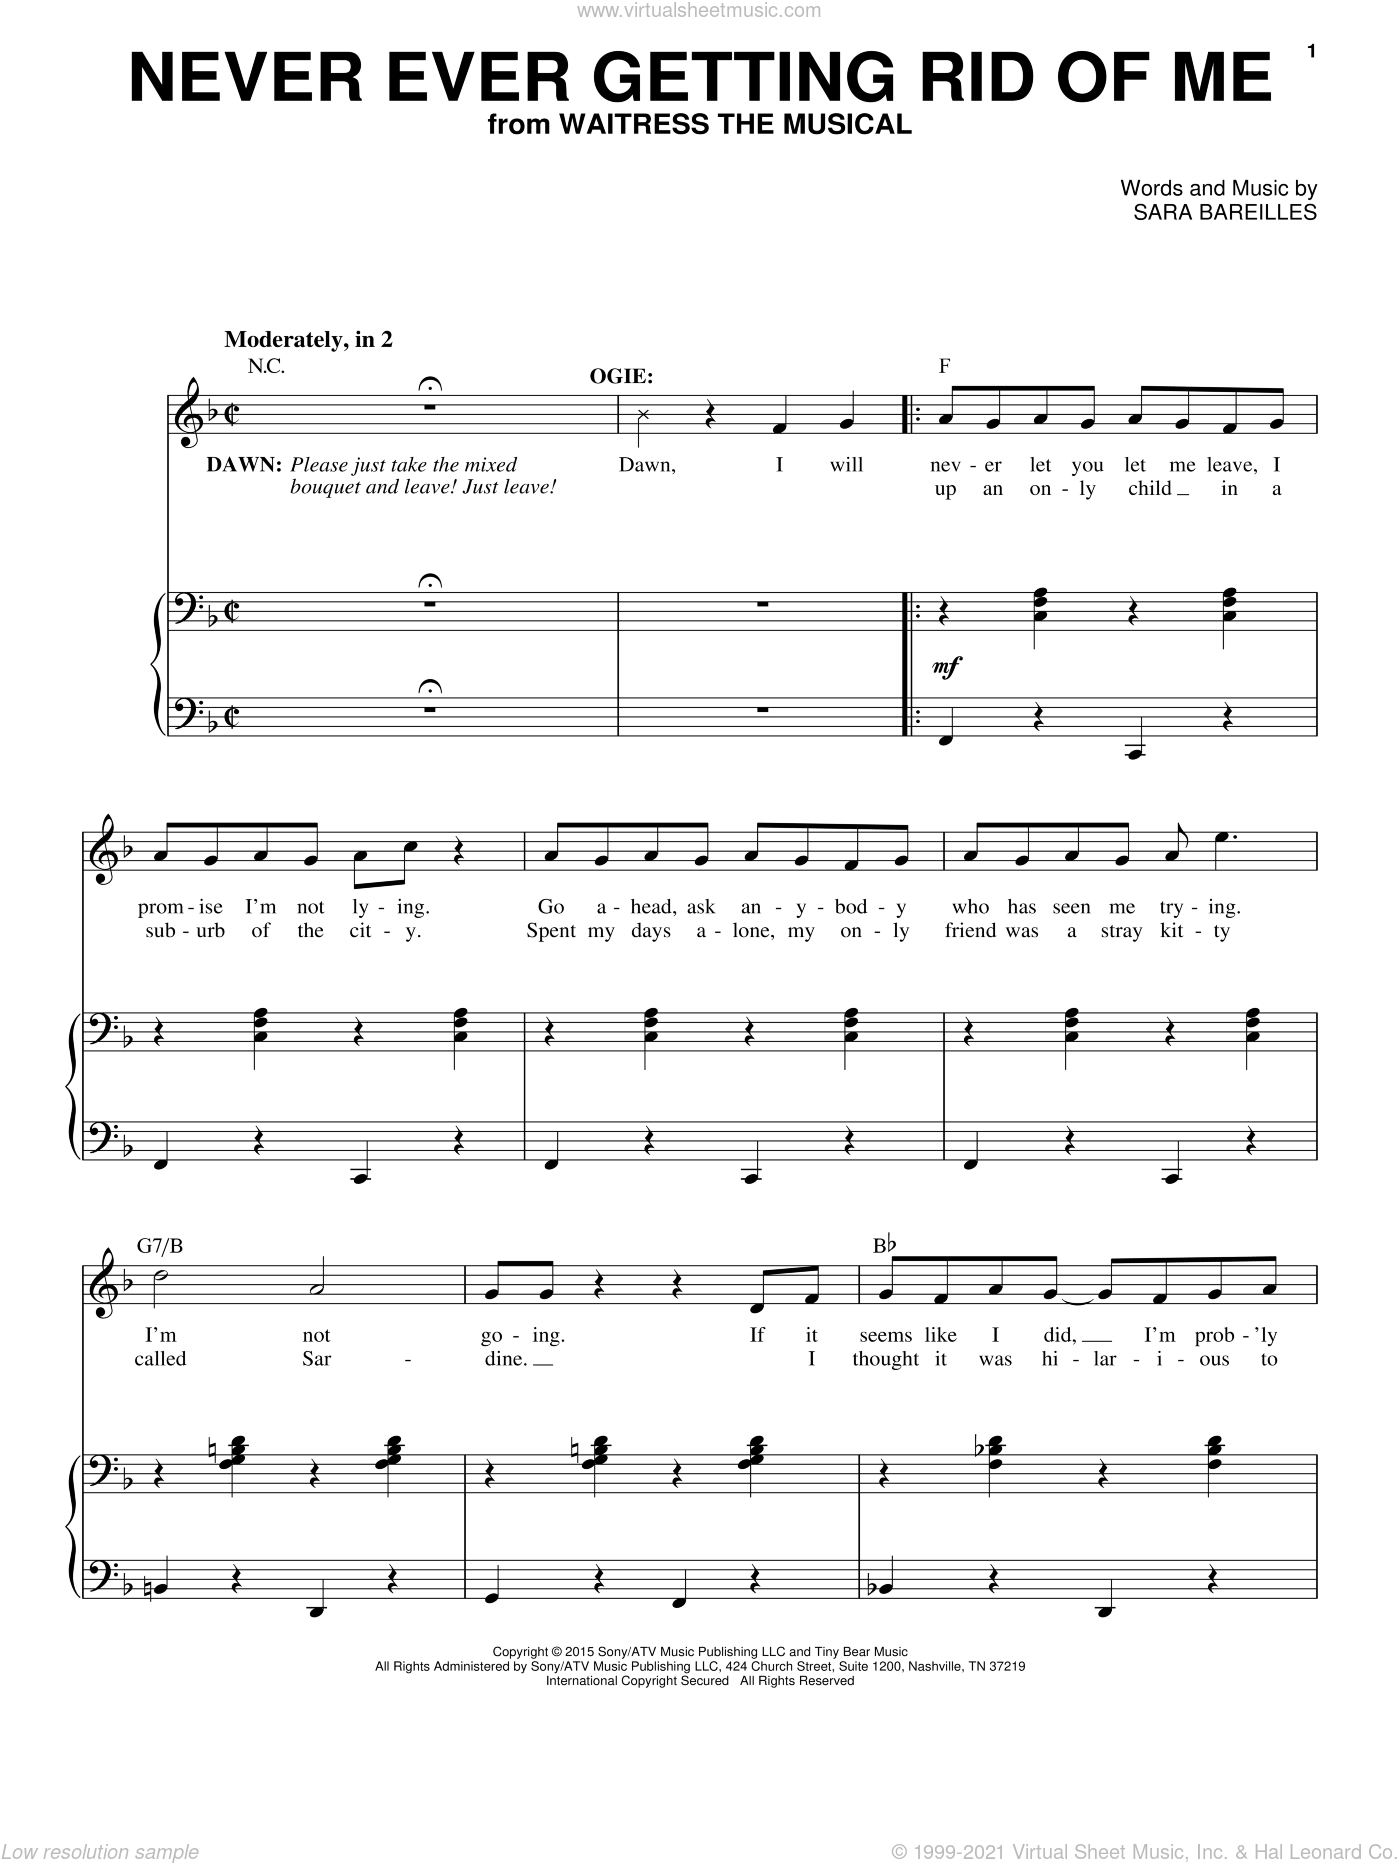 Never Ever Getting Rid Of Me (from Waitress The Musical) sheet music for voice and piano by Sara Bareilles, intermediate skill level